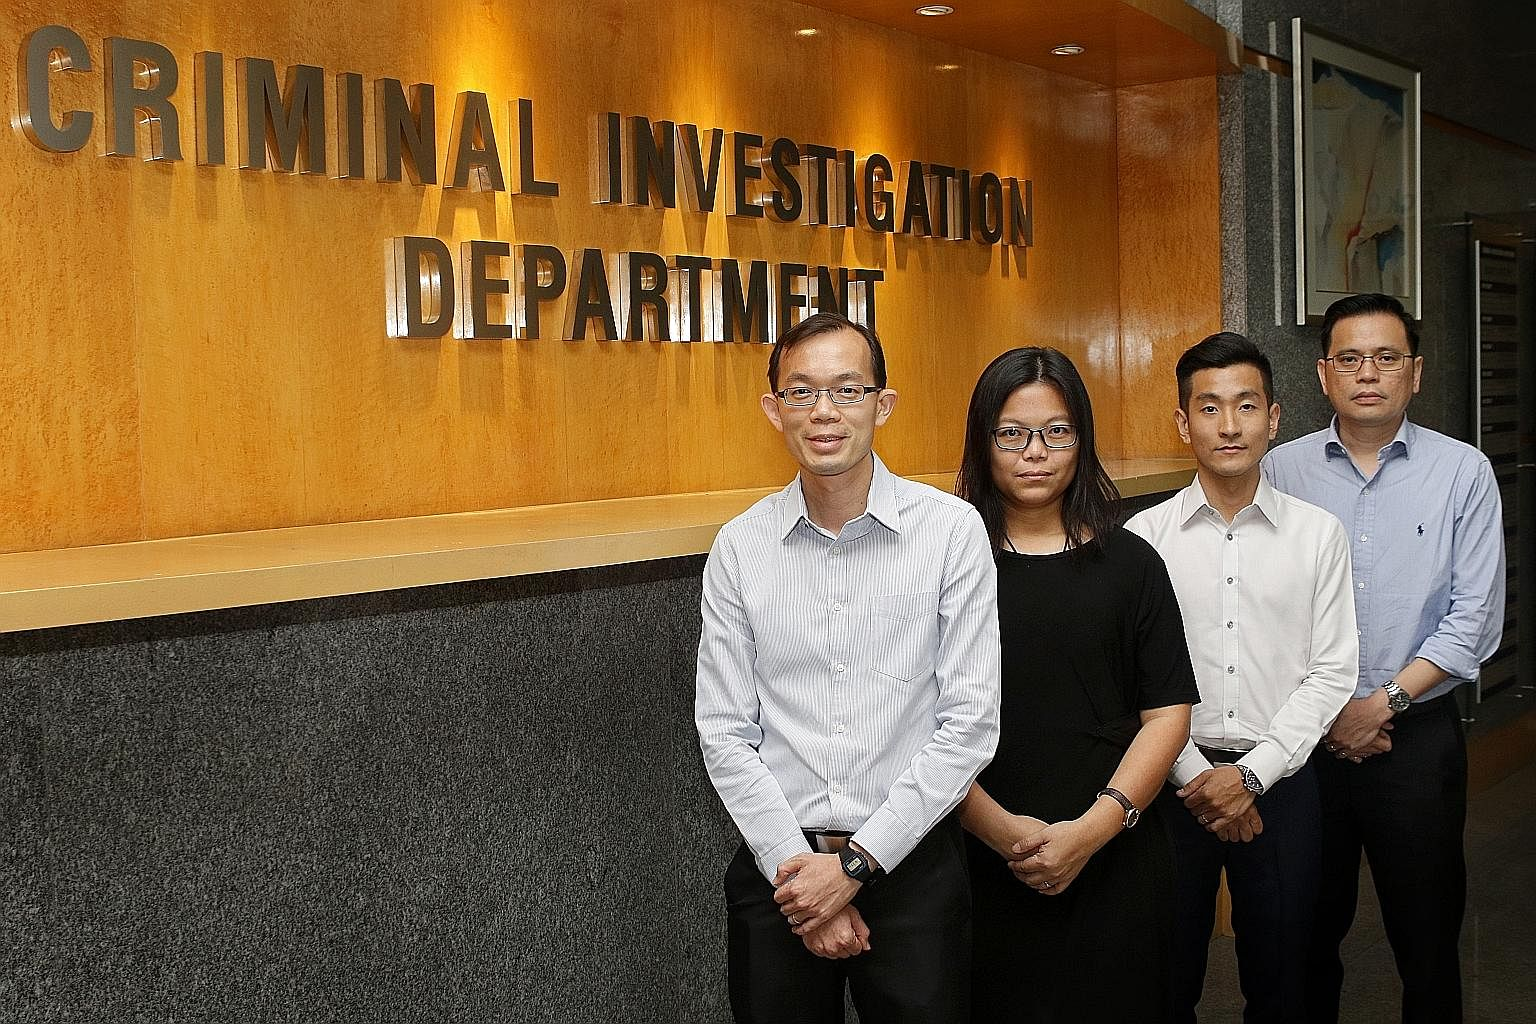 (From left) 2 Deputy Director Criminal Investigation Department (CID) and Senior Assistant Commissioner of Police Lian Ghim Hua